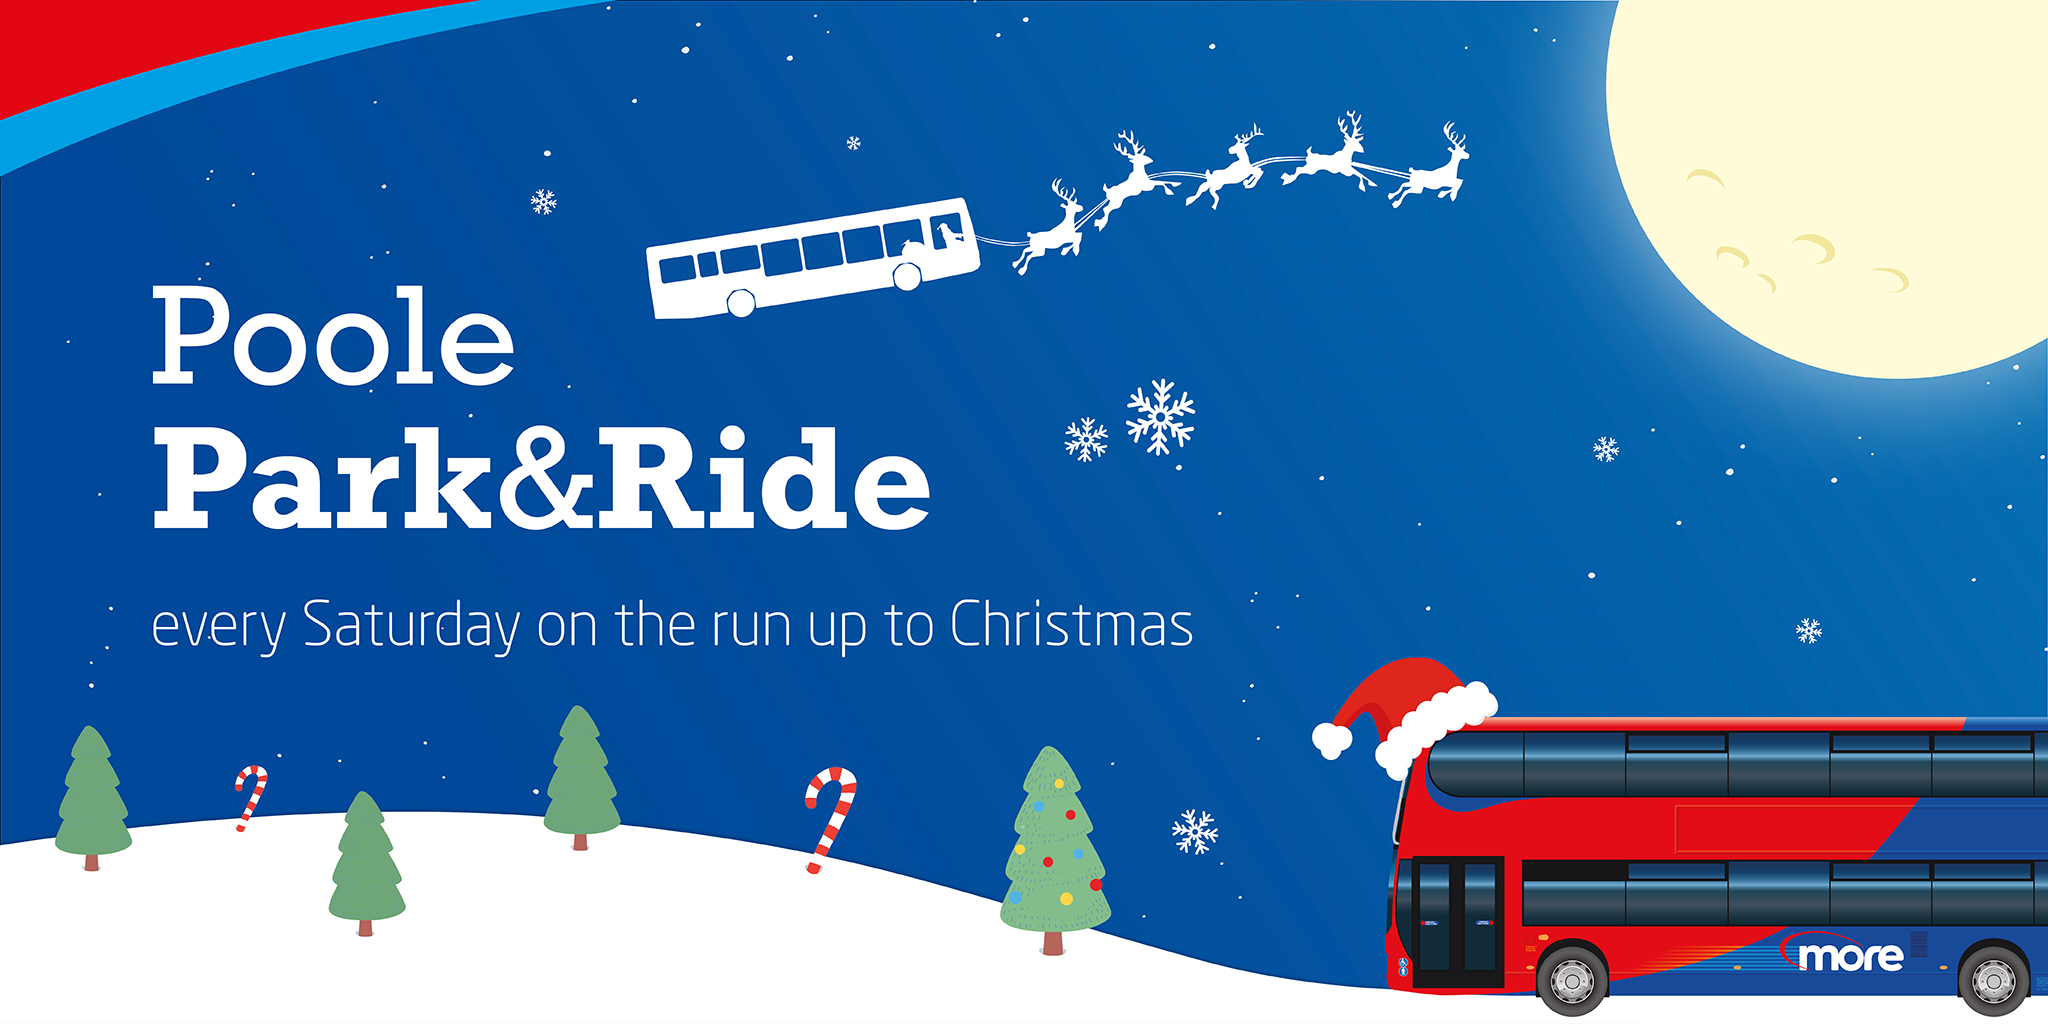 Illustration reading 'Poole Park & Ride - every Saturday on the run to Christmas'